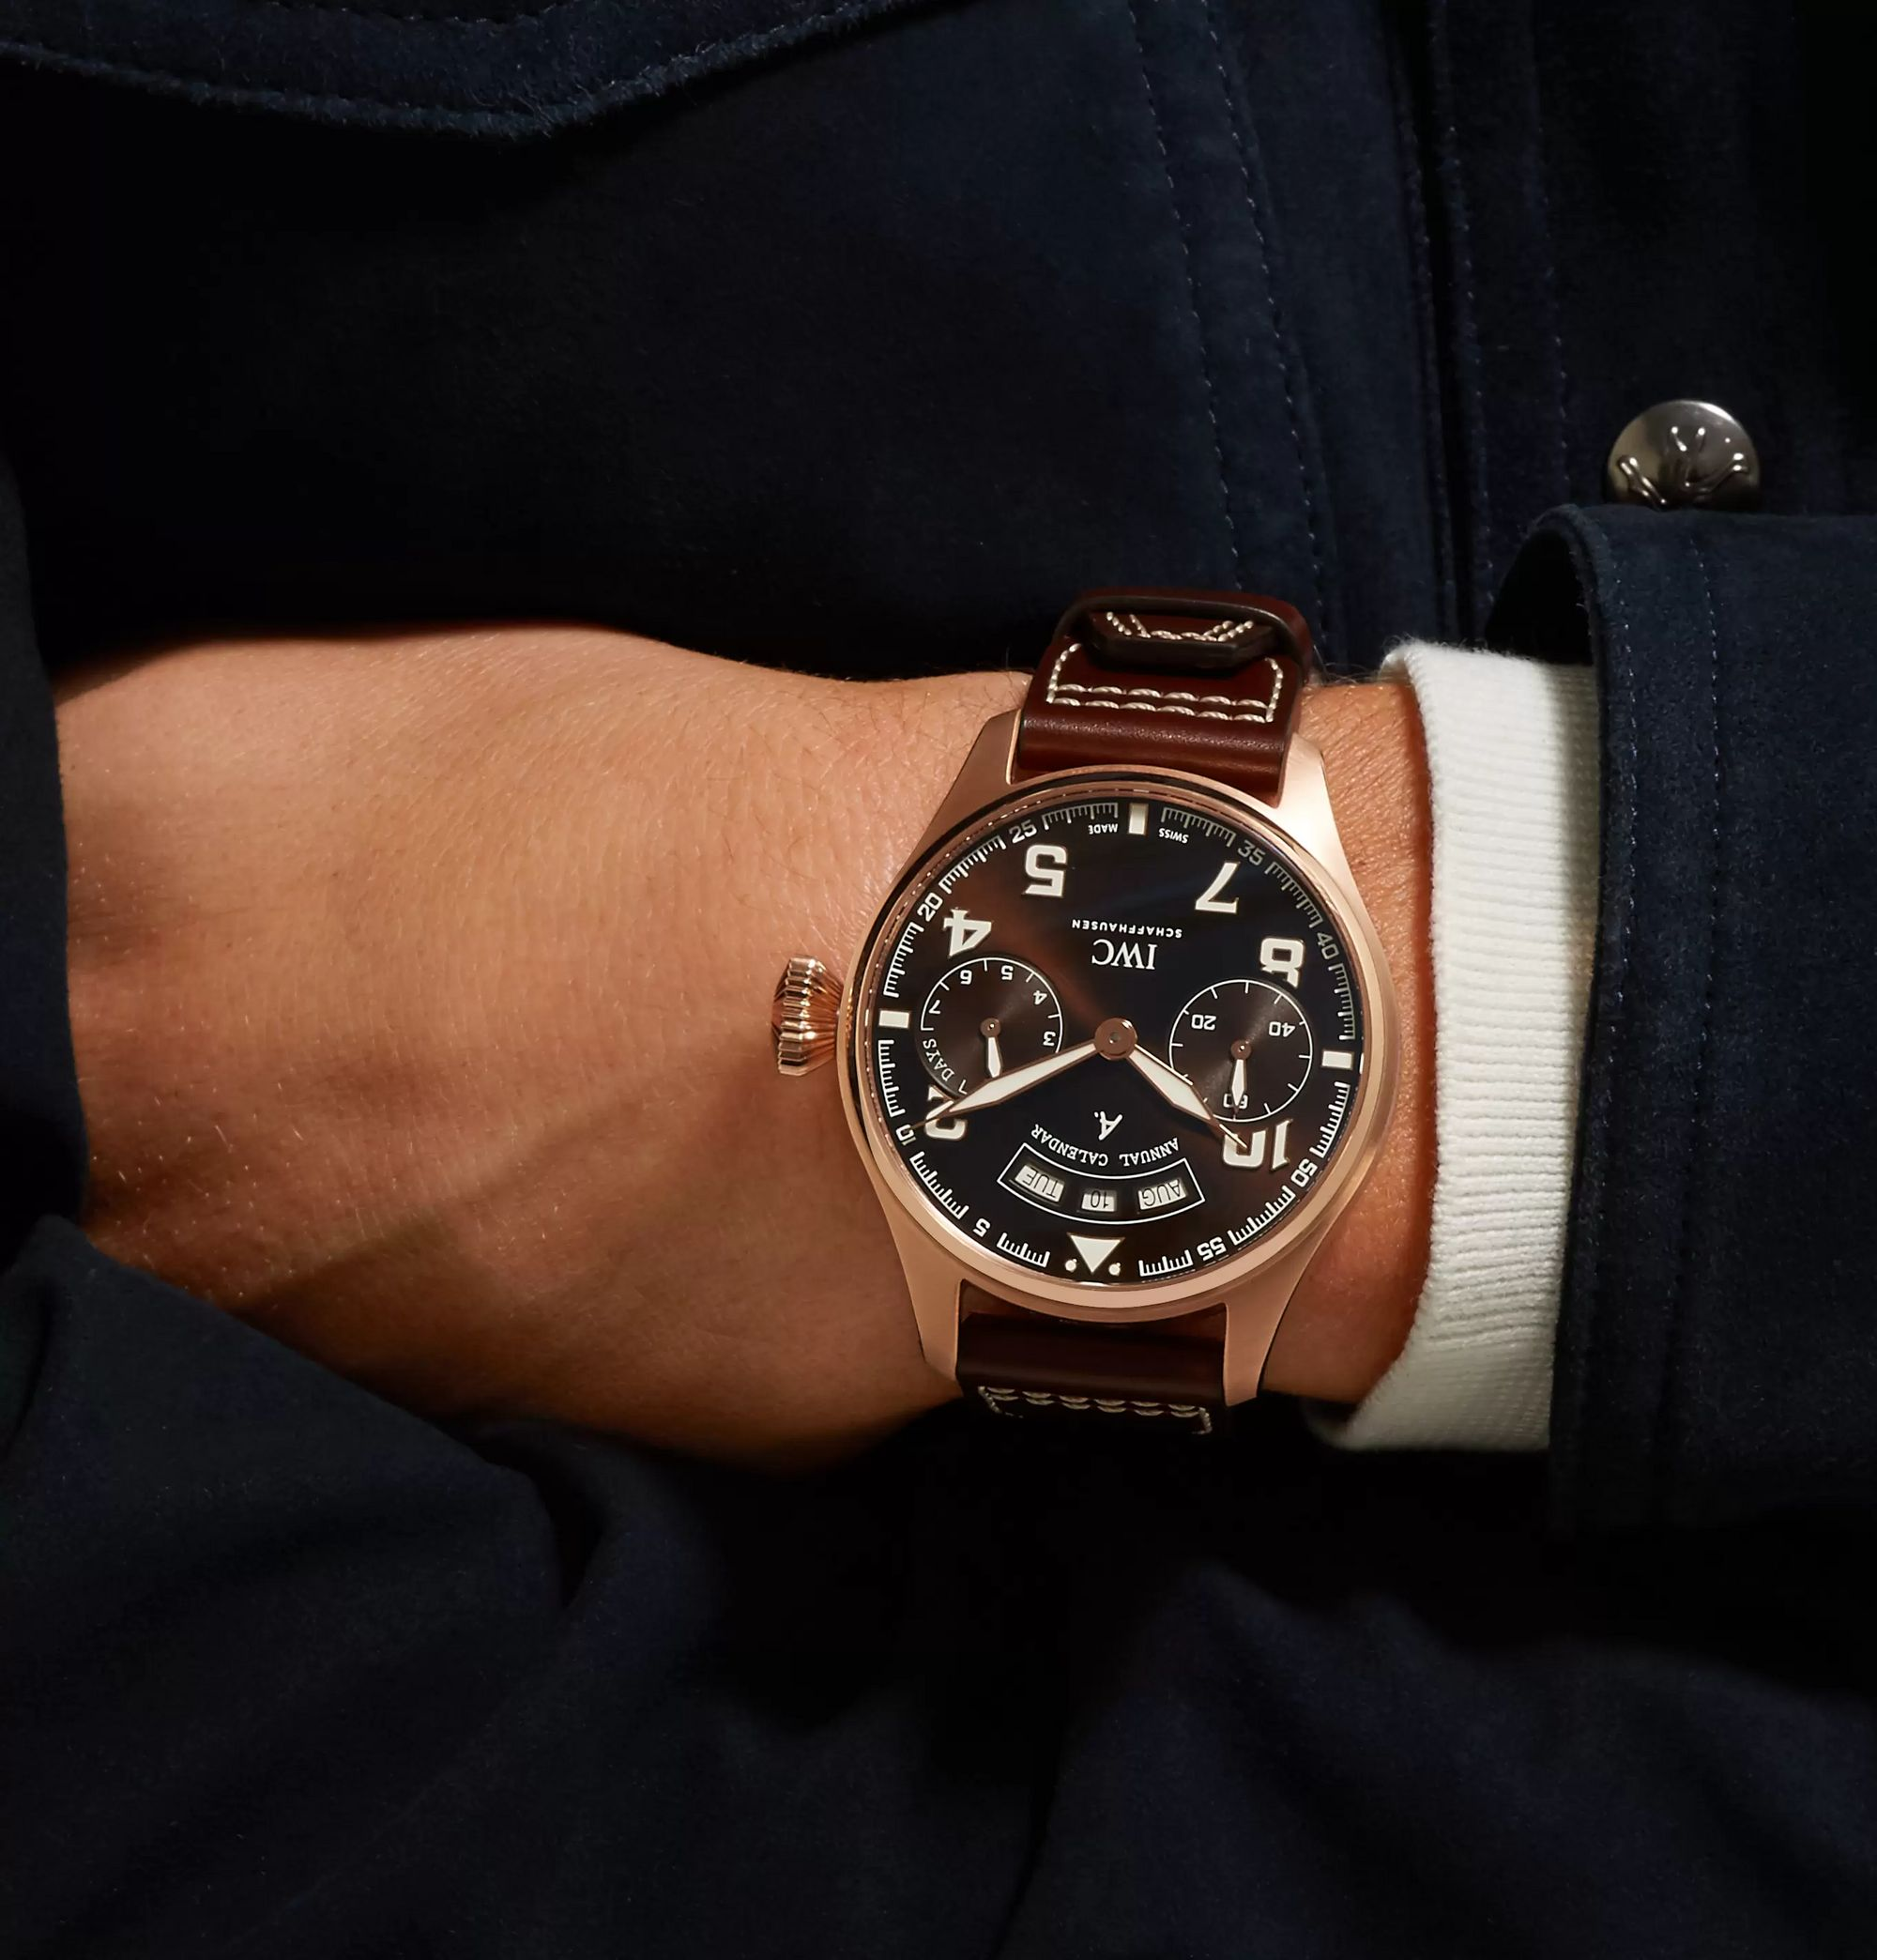 IWC SCHAFFHAUSEN Big Pilot's Antoine de Saint-Exupéry 46mm 18-Karat Red Gold and Leather Watch, Ref. No. IW502706